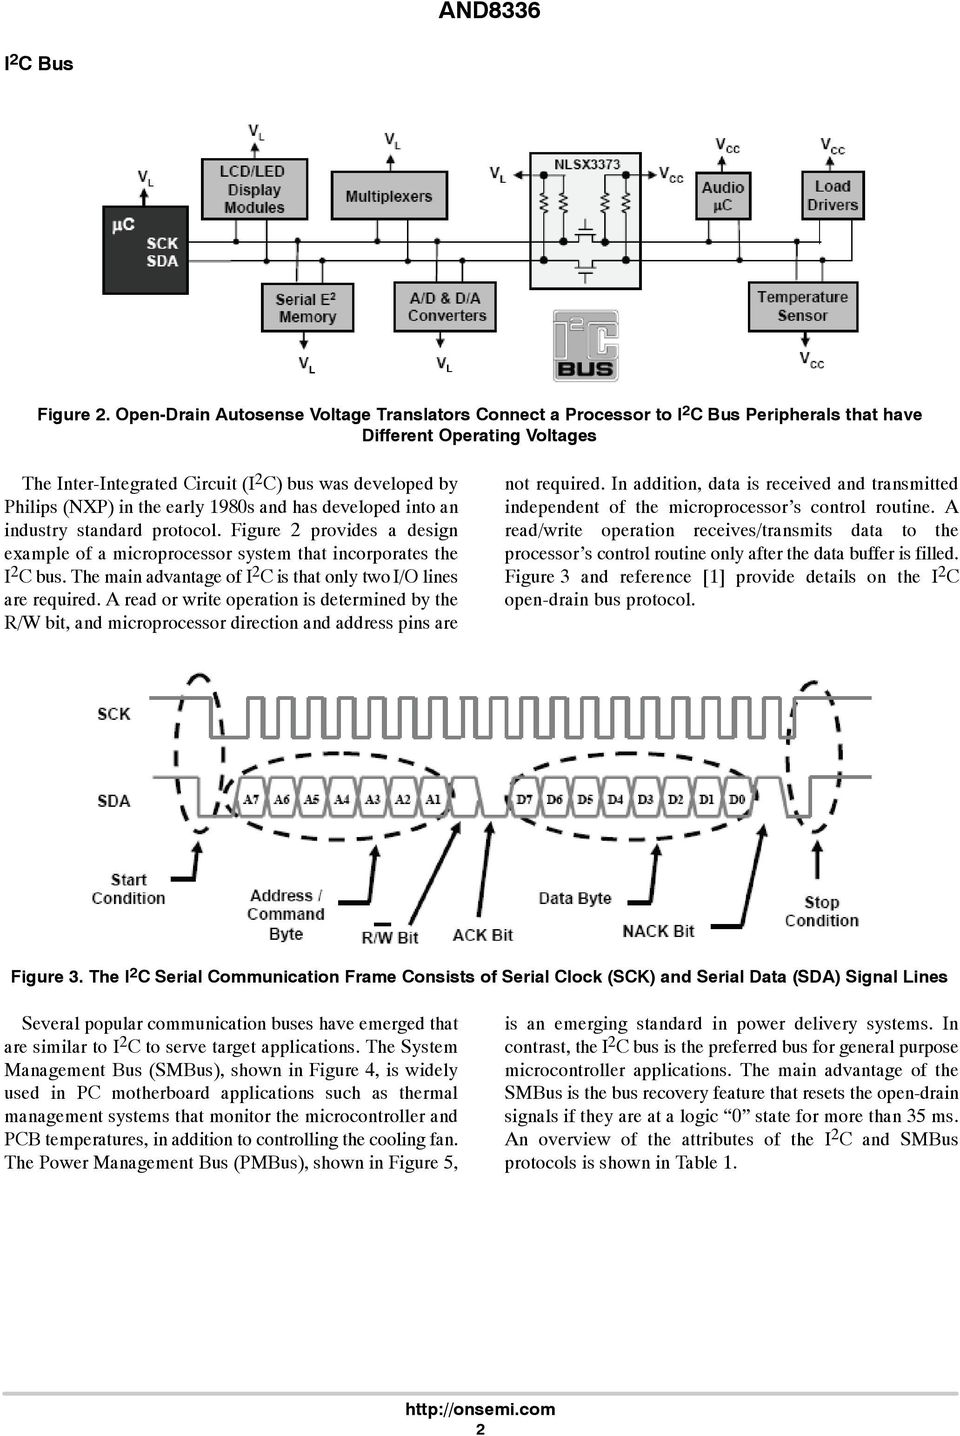 the early 1980s and has developed into an industry standard protocol. Figure 2 provides a design example of a microprocessor system that incorporates the I 2 C bus.